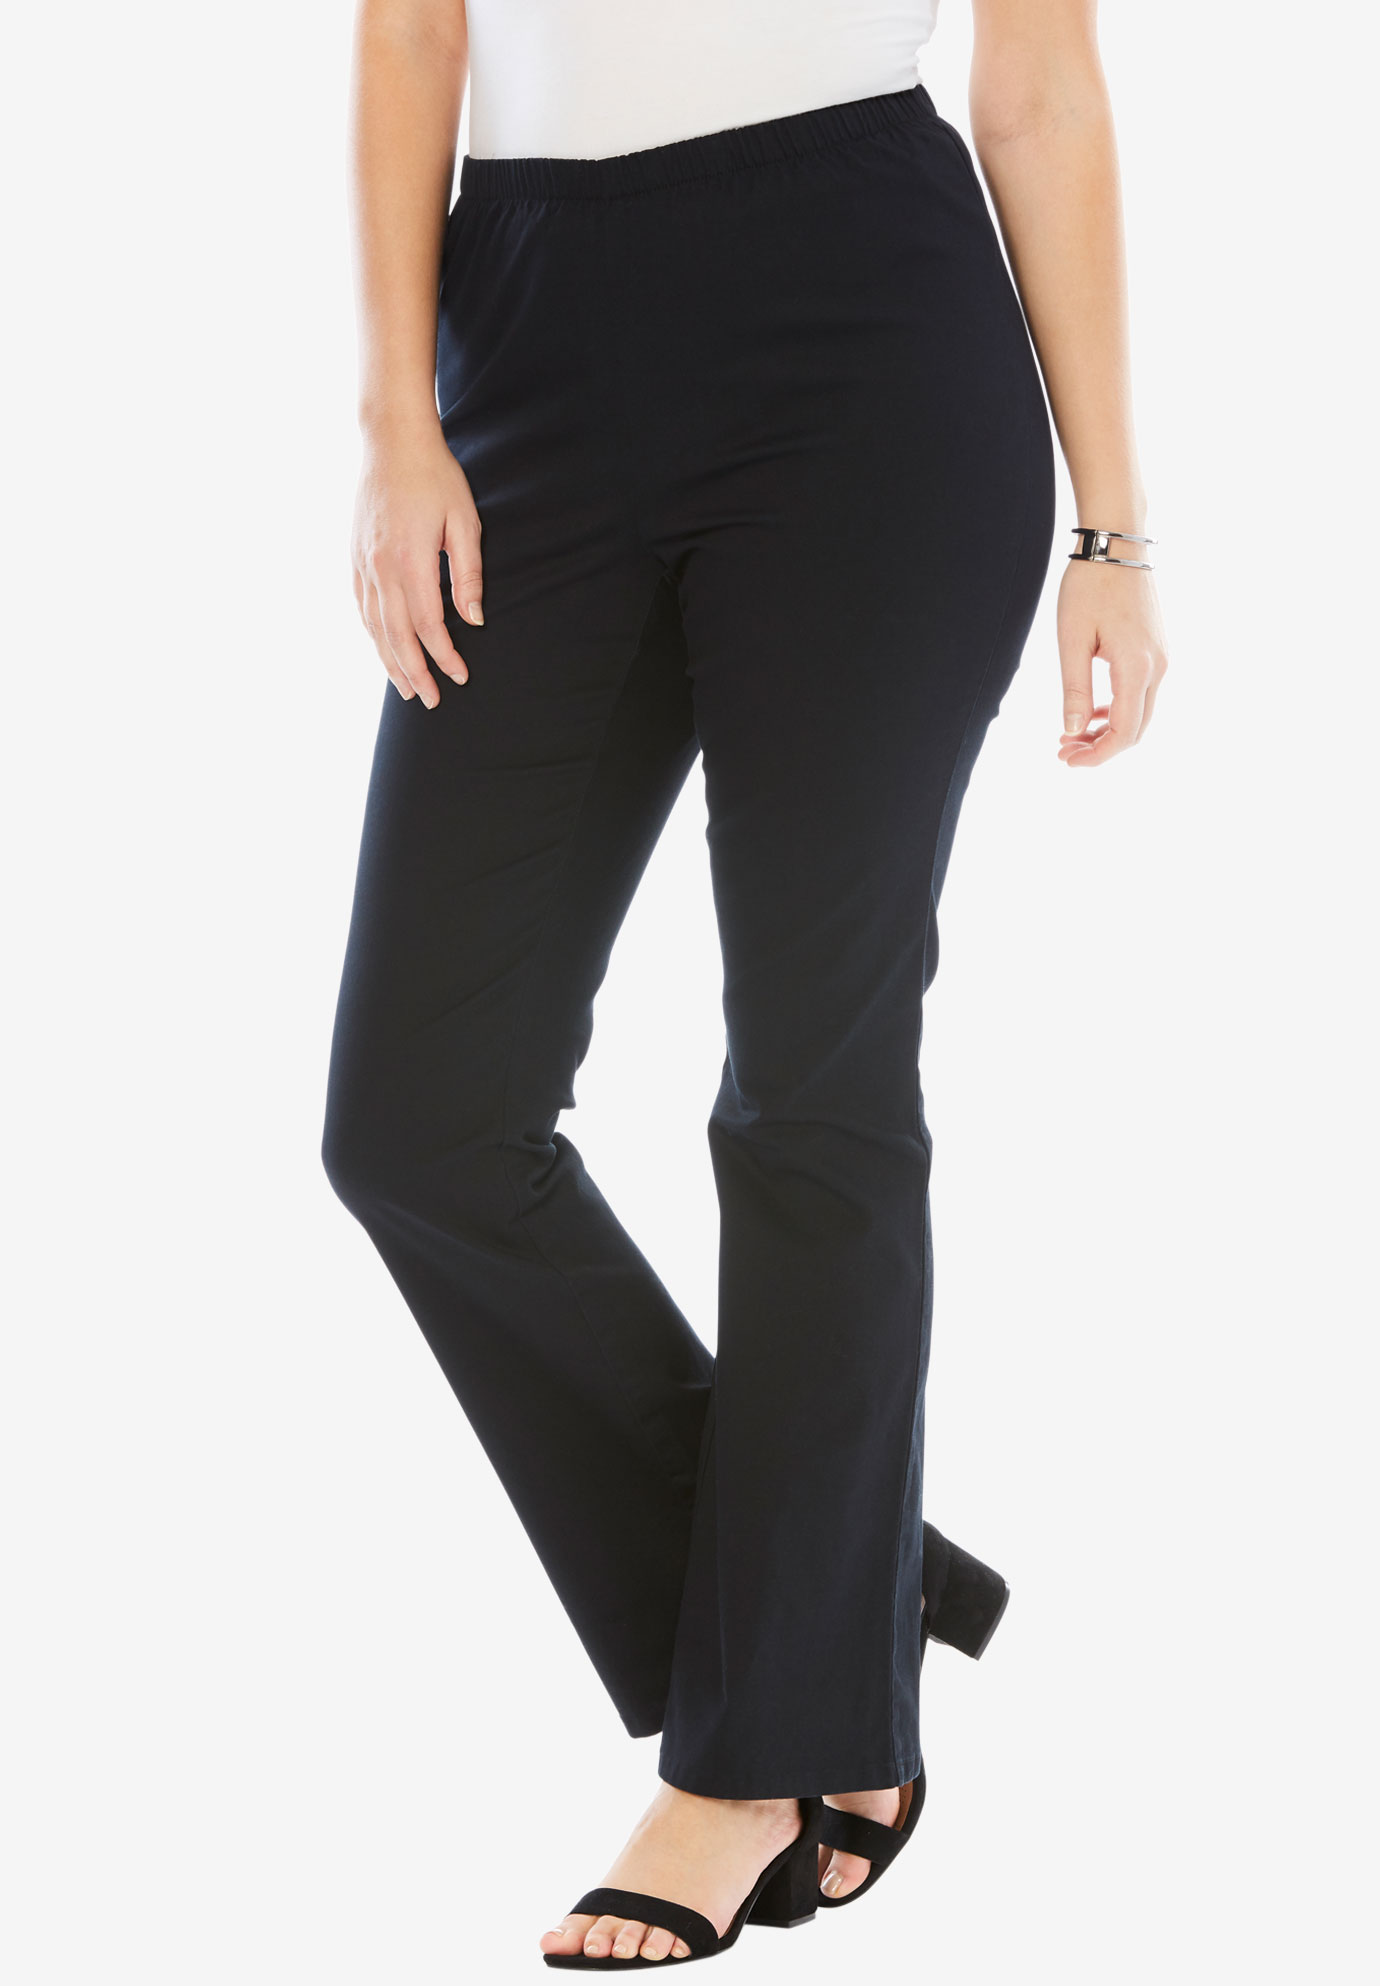 6f4097bb4d Bootcut Pull-On Stretch Jean by Denim 24/7®| Plus Size Pants | Full ...